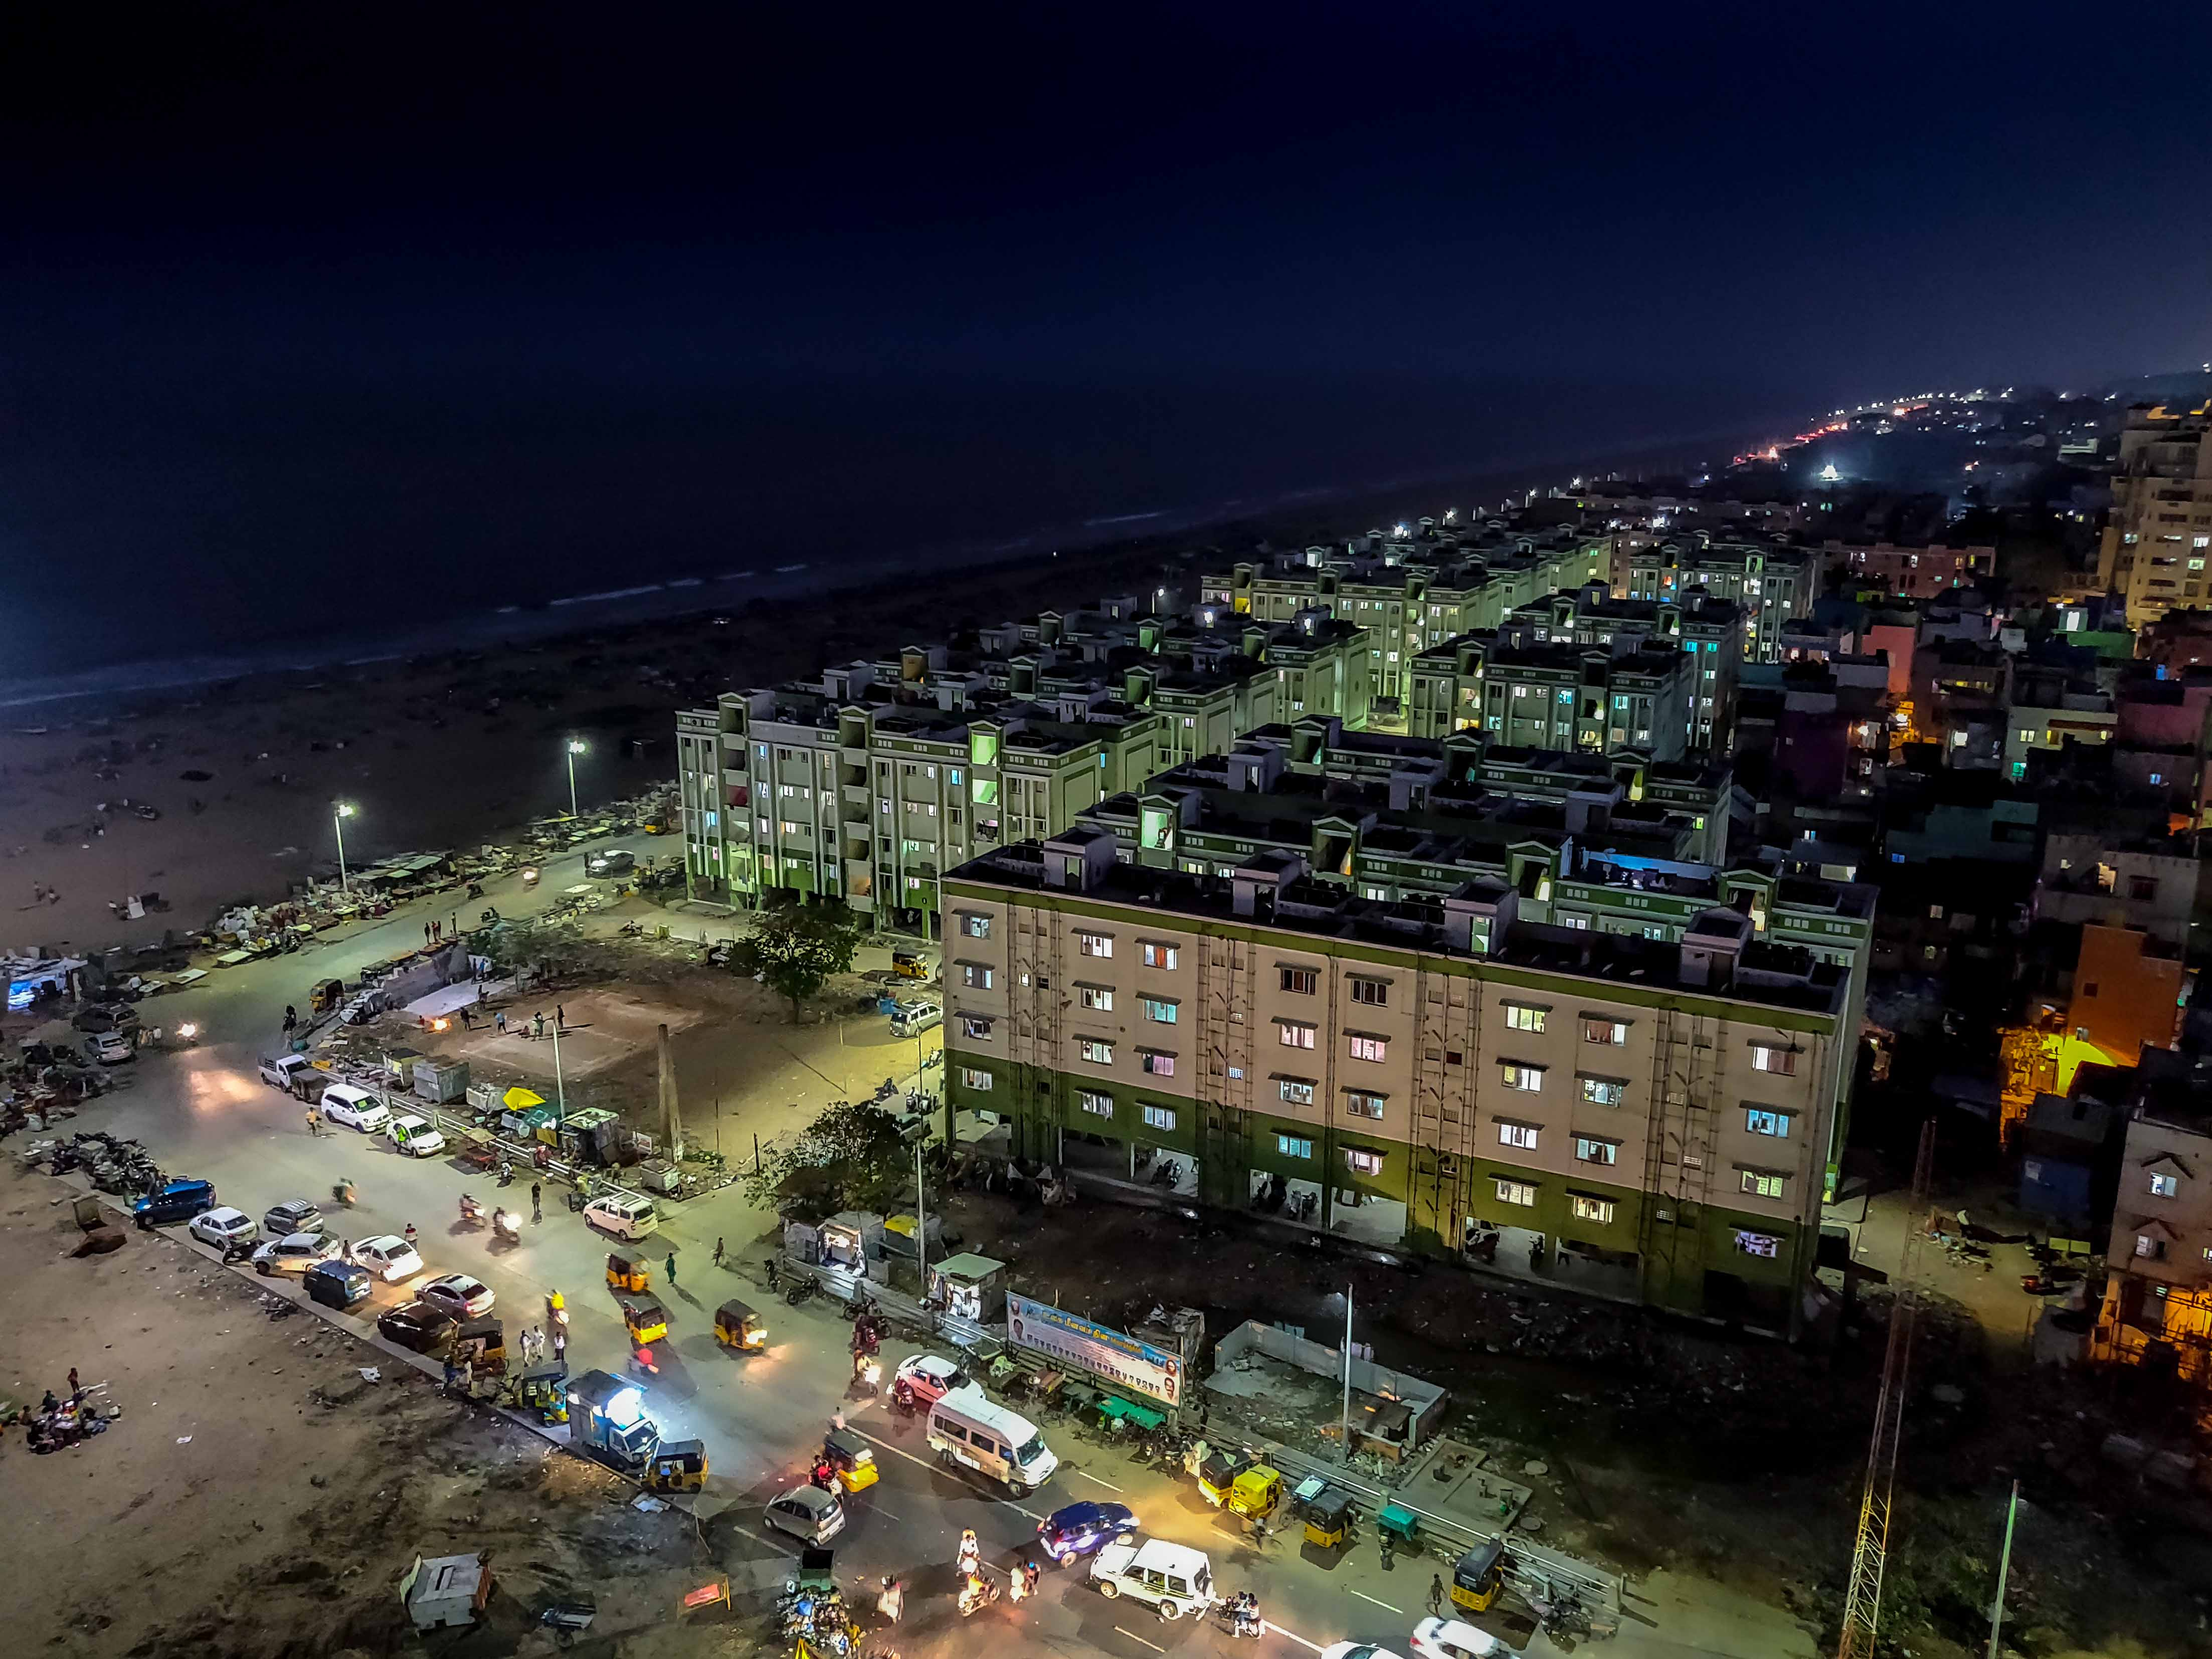 Night Life of Chennai